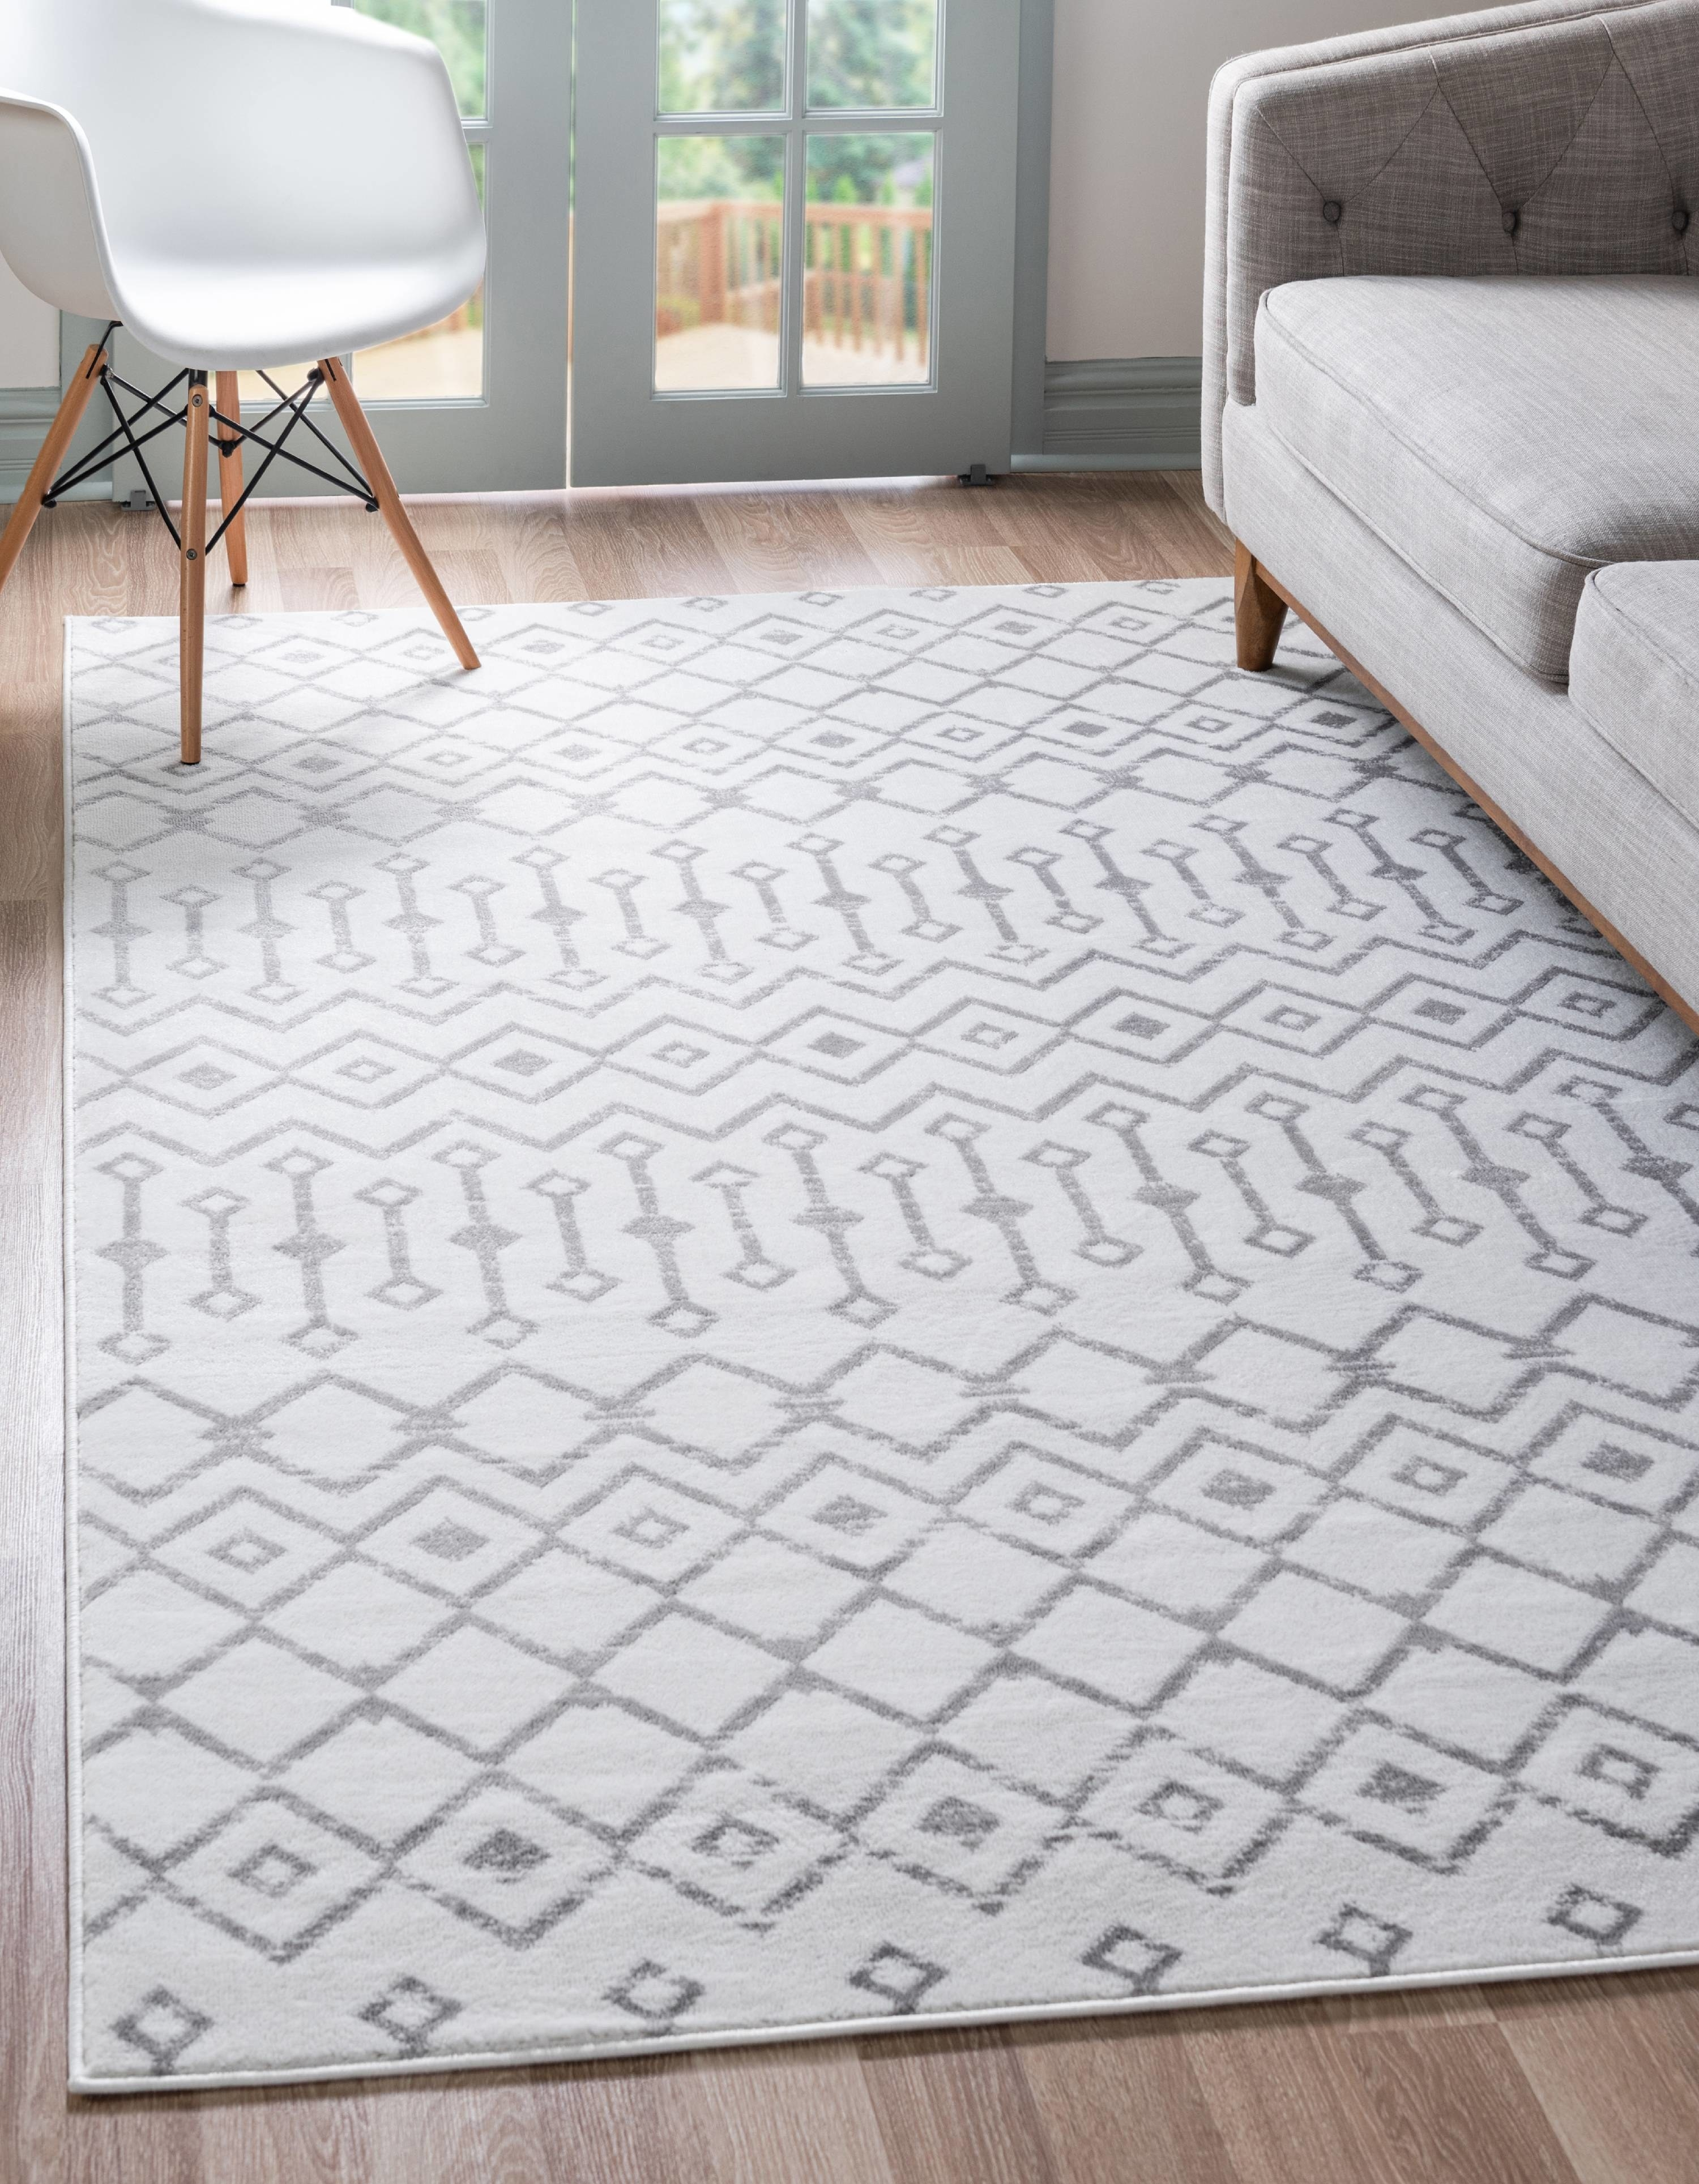 a white rug with a grey Moroccan design on it